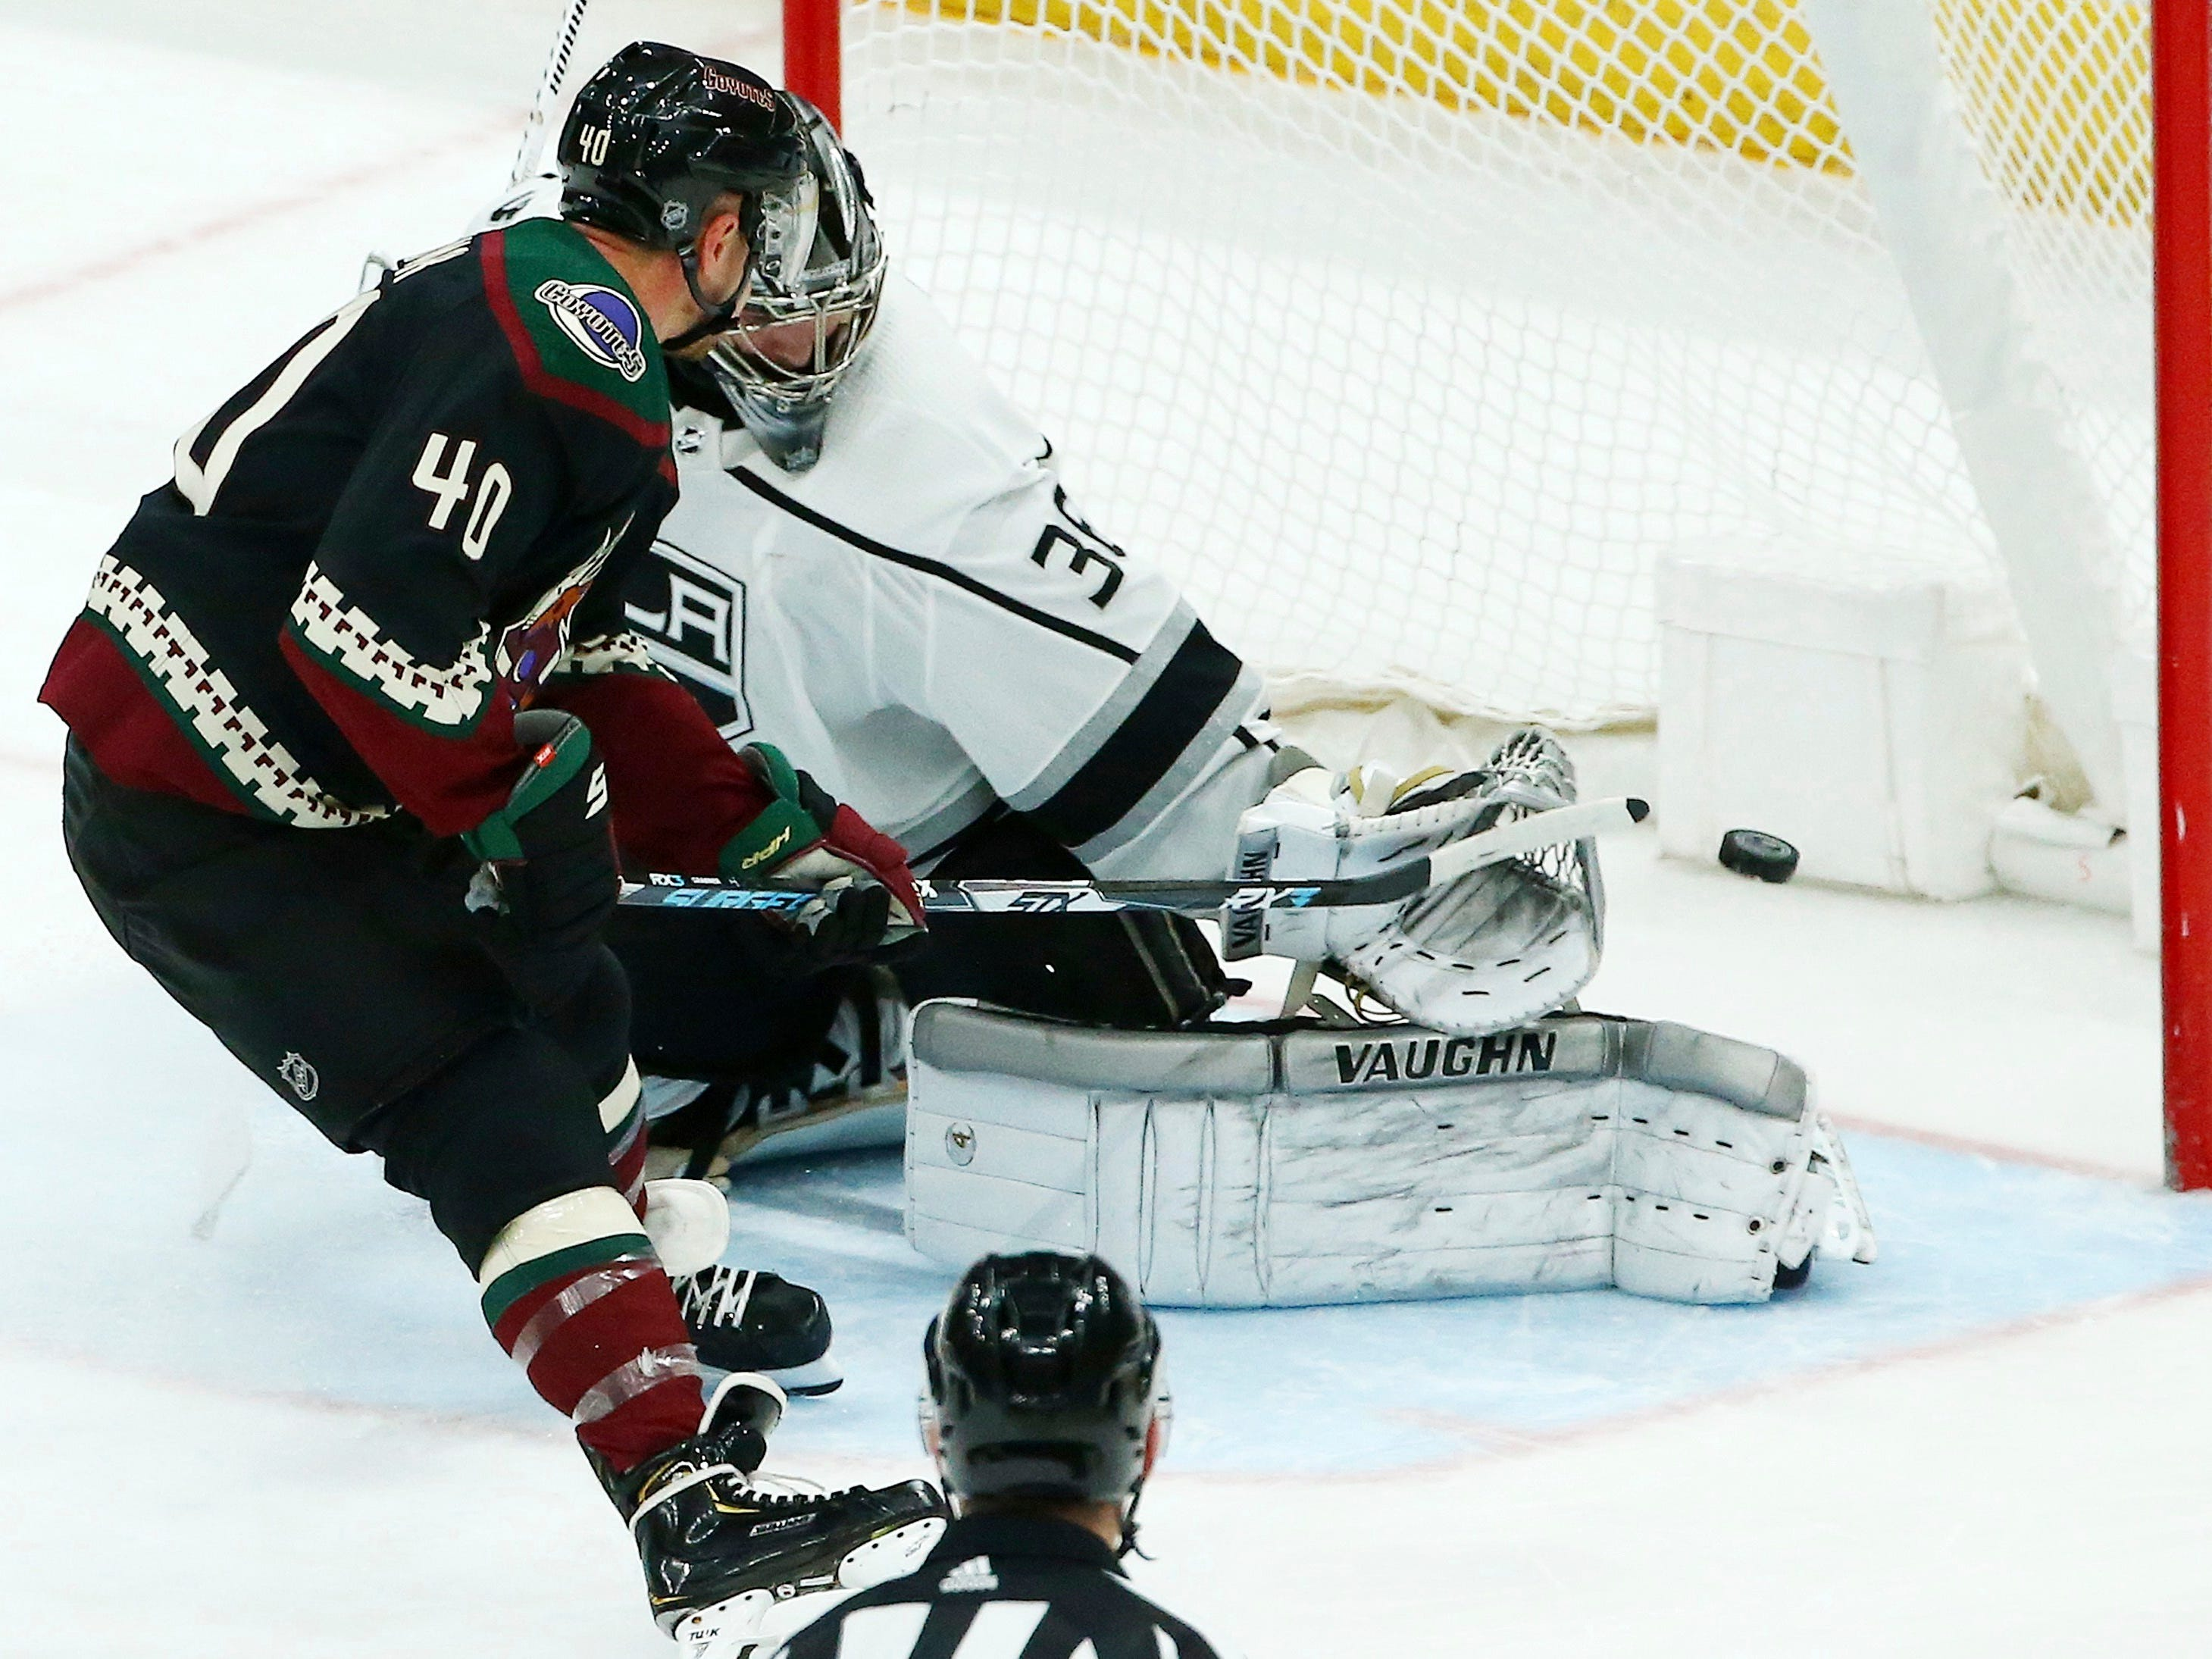 Arizona Coyotes right wing Michael Grabner (40) scores a goal against Los Angeles Kings goaltender Jack Campbell, right, during the third period of an NHL hockey game Saturday, March 9, 2019, in Glendale, Ariz. The Coyotes defeated the Kings 4-2.